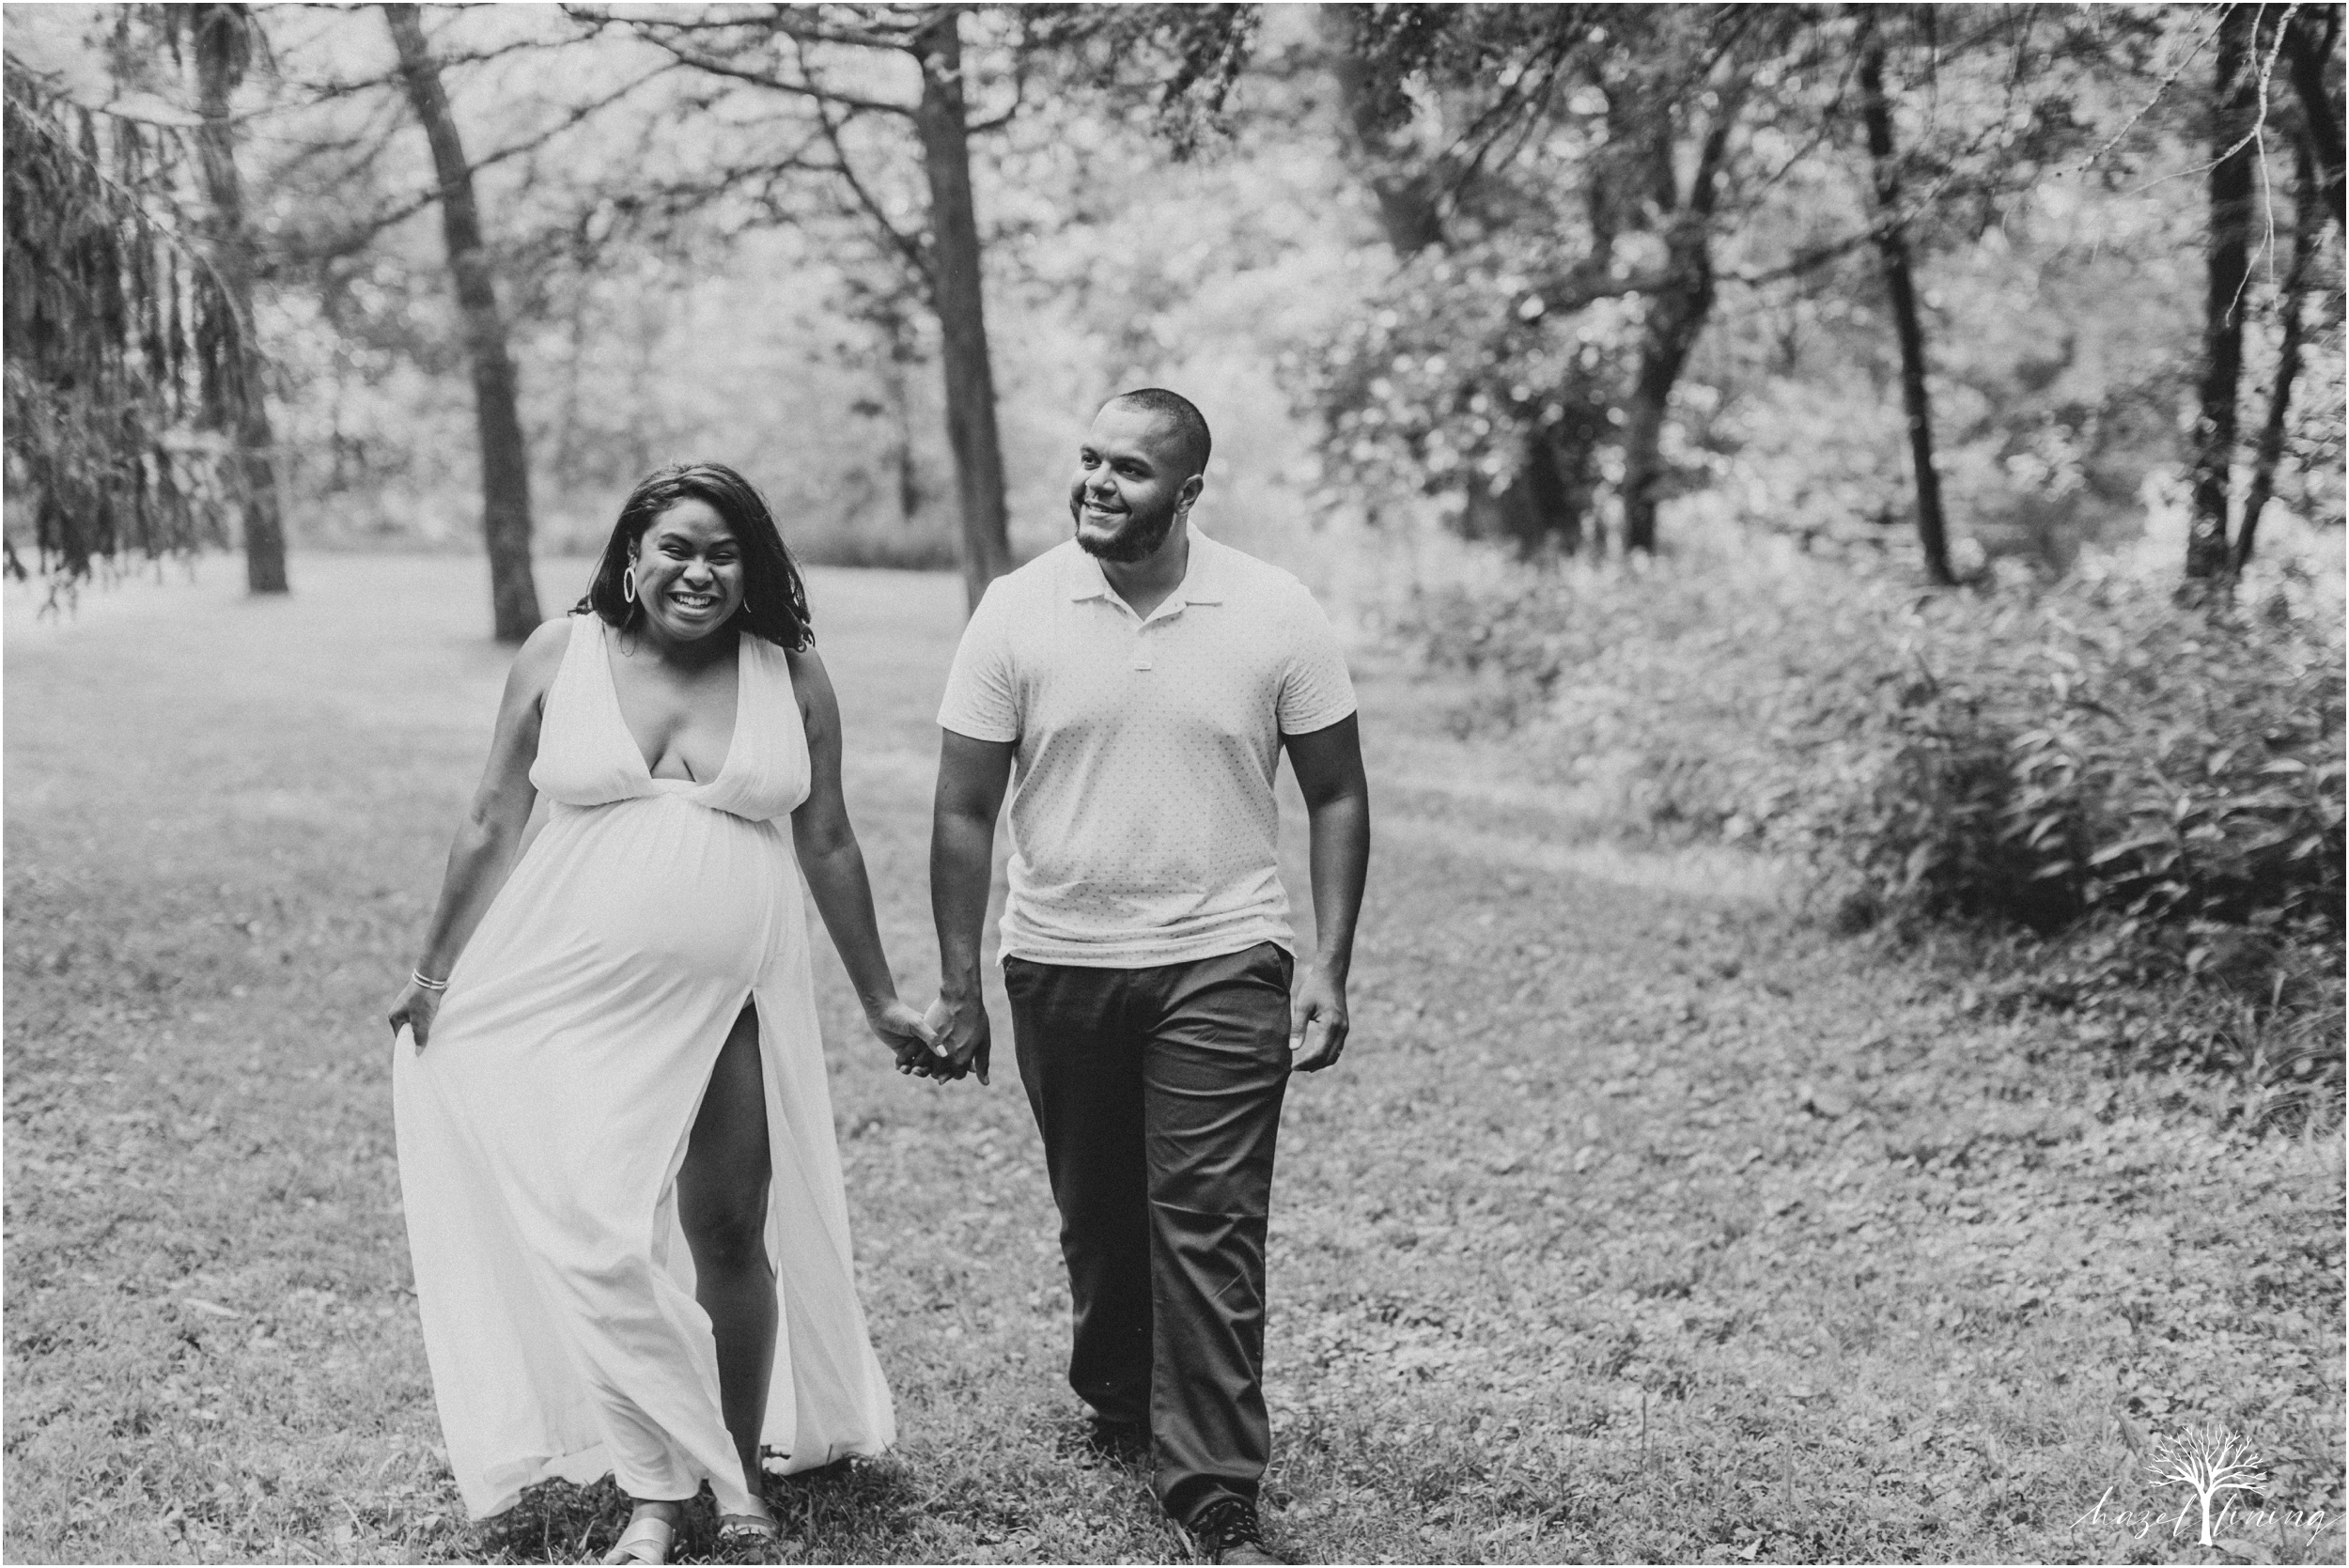 leyka-kristofer-chaparro-ralph-stover-state-park-summer-golden-hour-stream-maternity-session-hazel-lining-travel-wedding-elopement-photography_0026.jpg